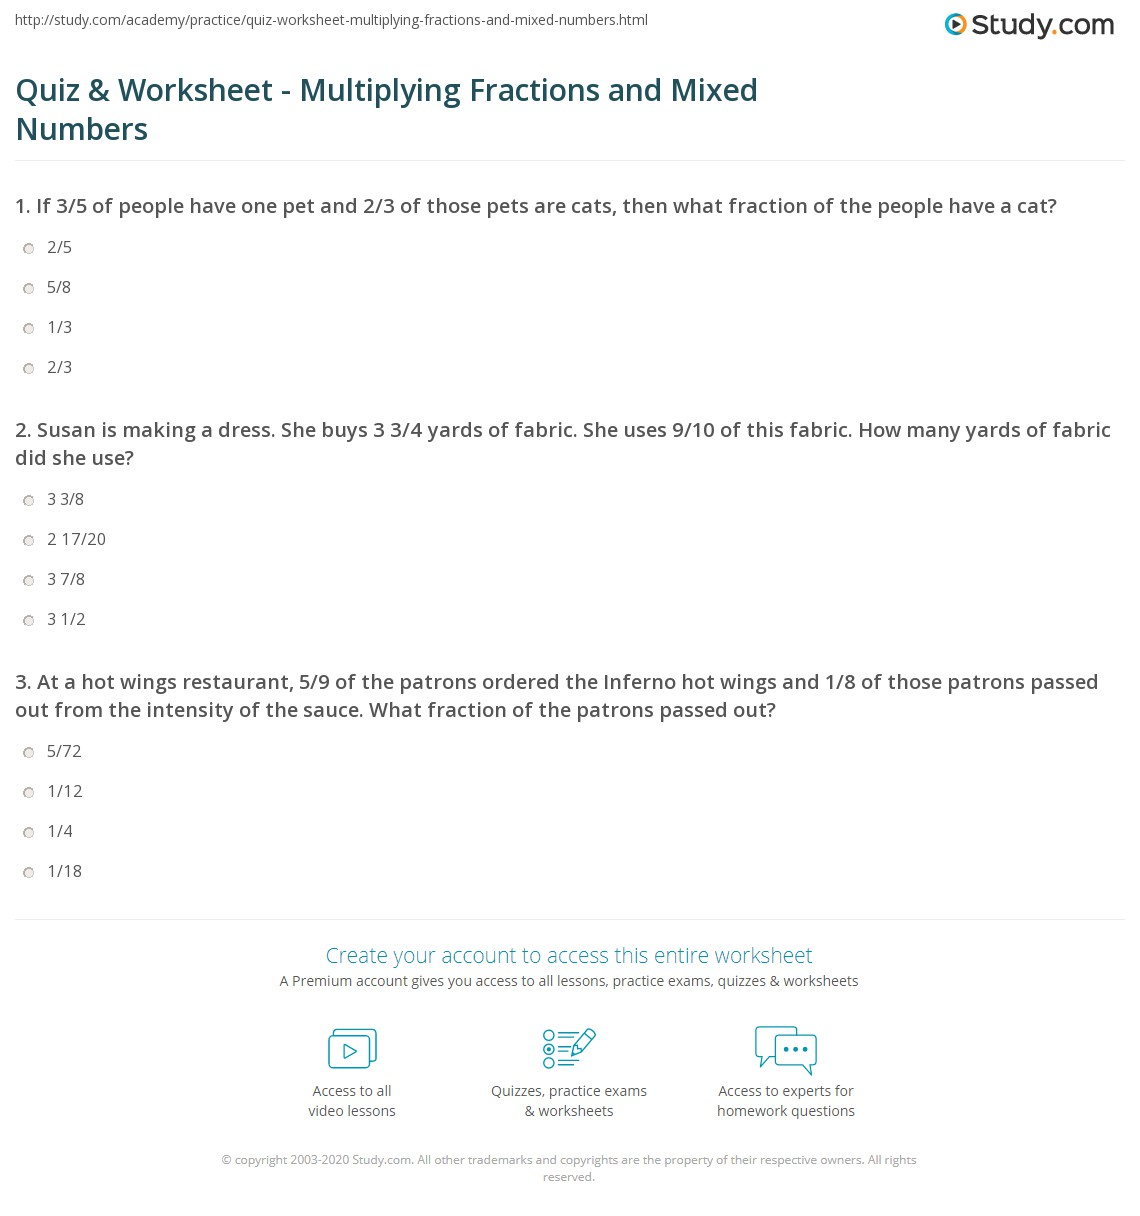 quiz & worksheet - multiplying fractions and mixed numbers | study